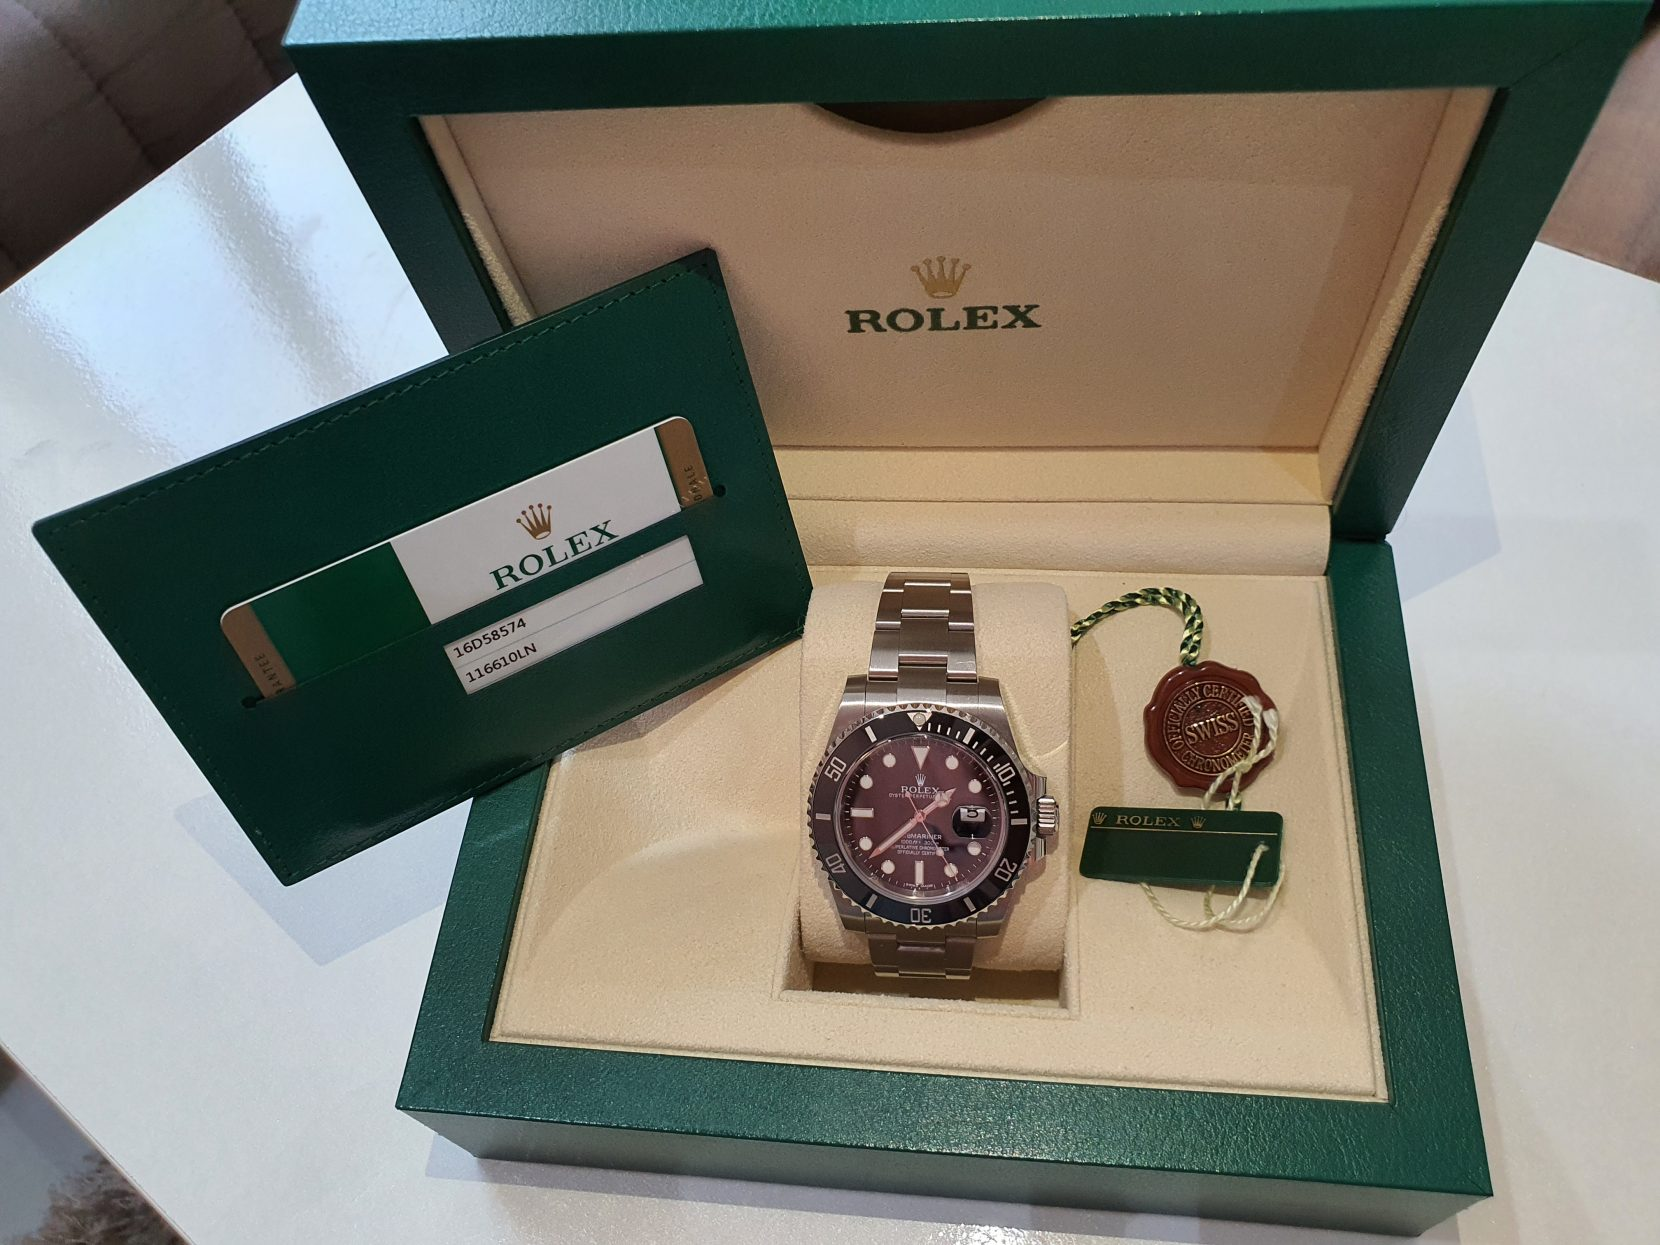 Submariner rolex watch